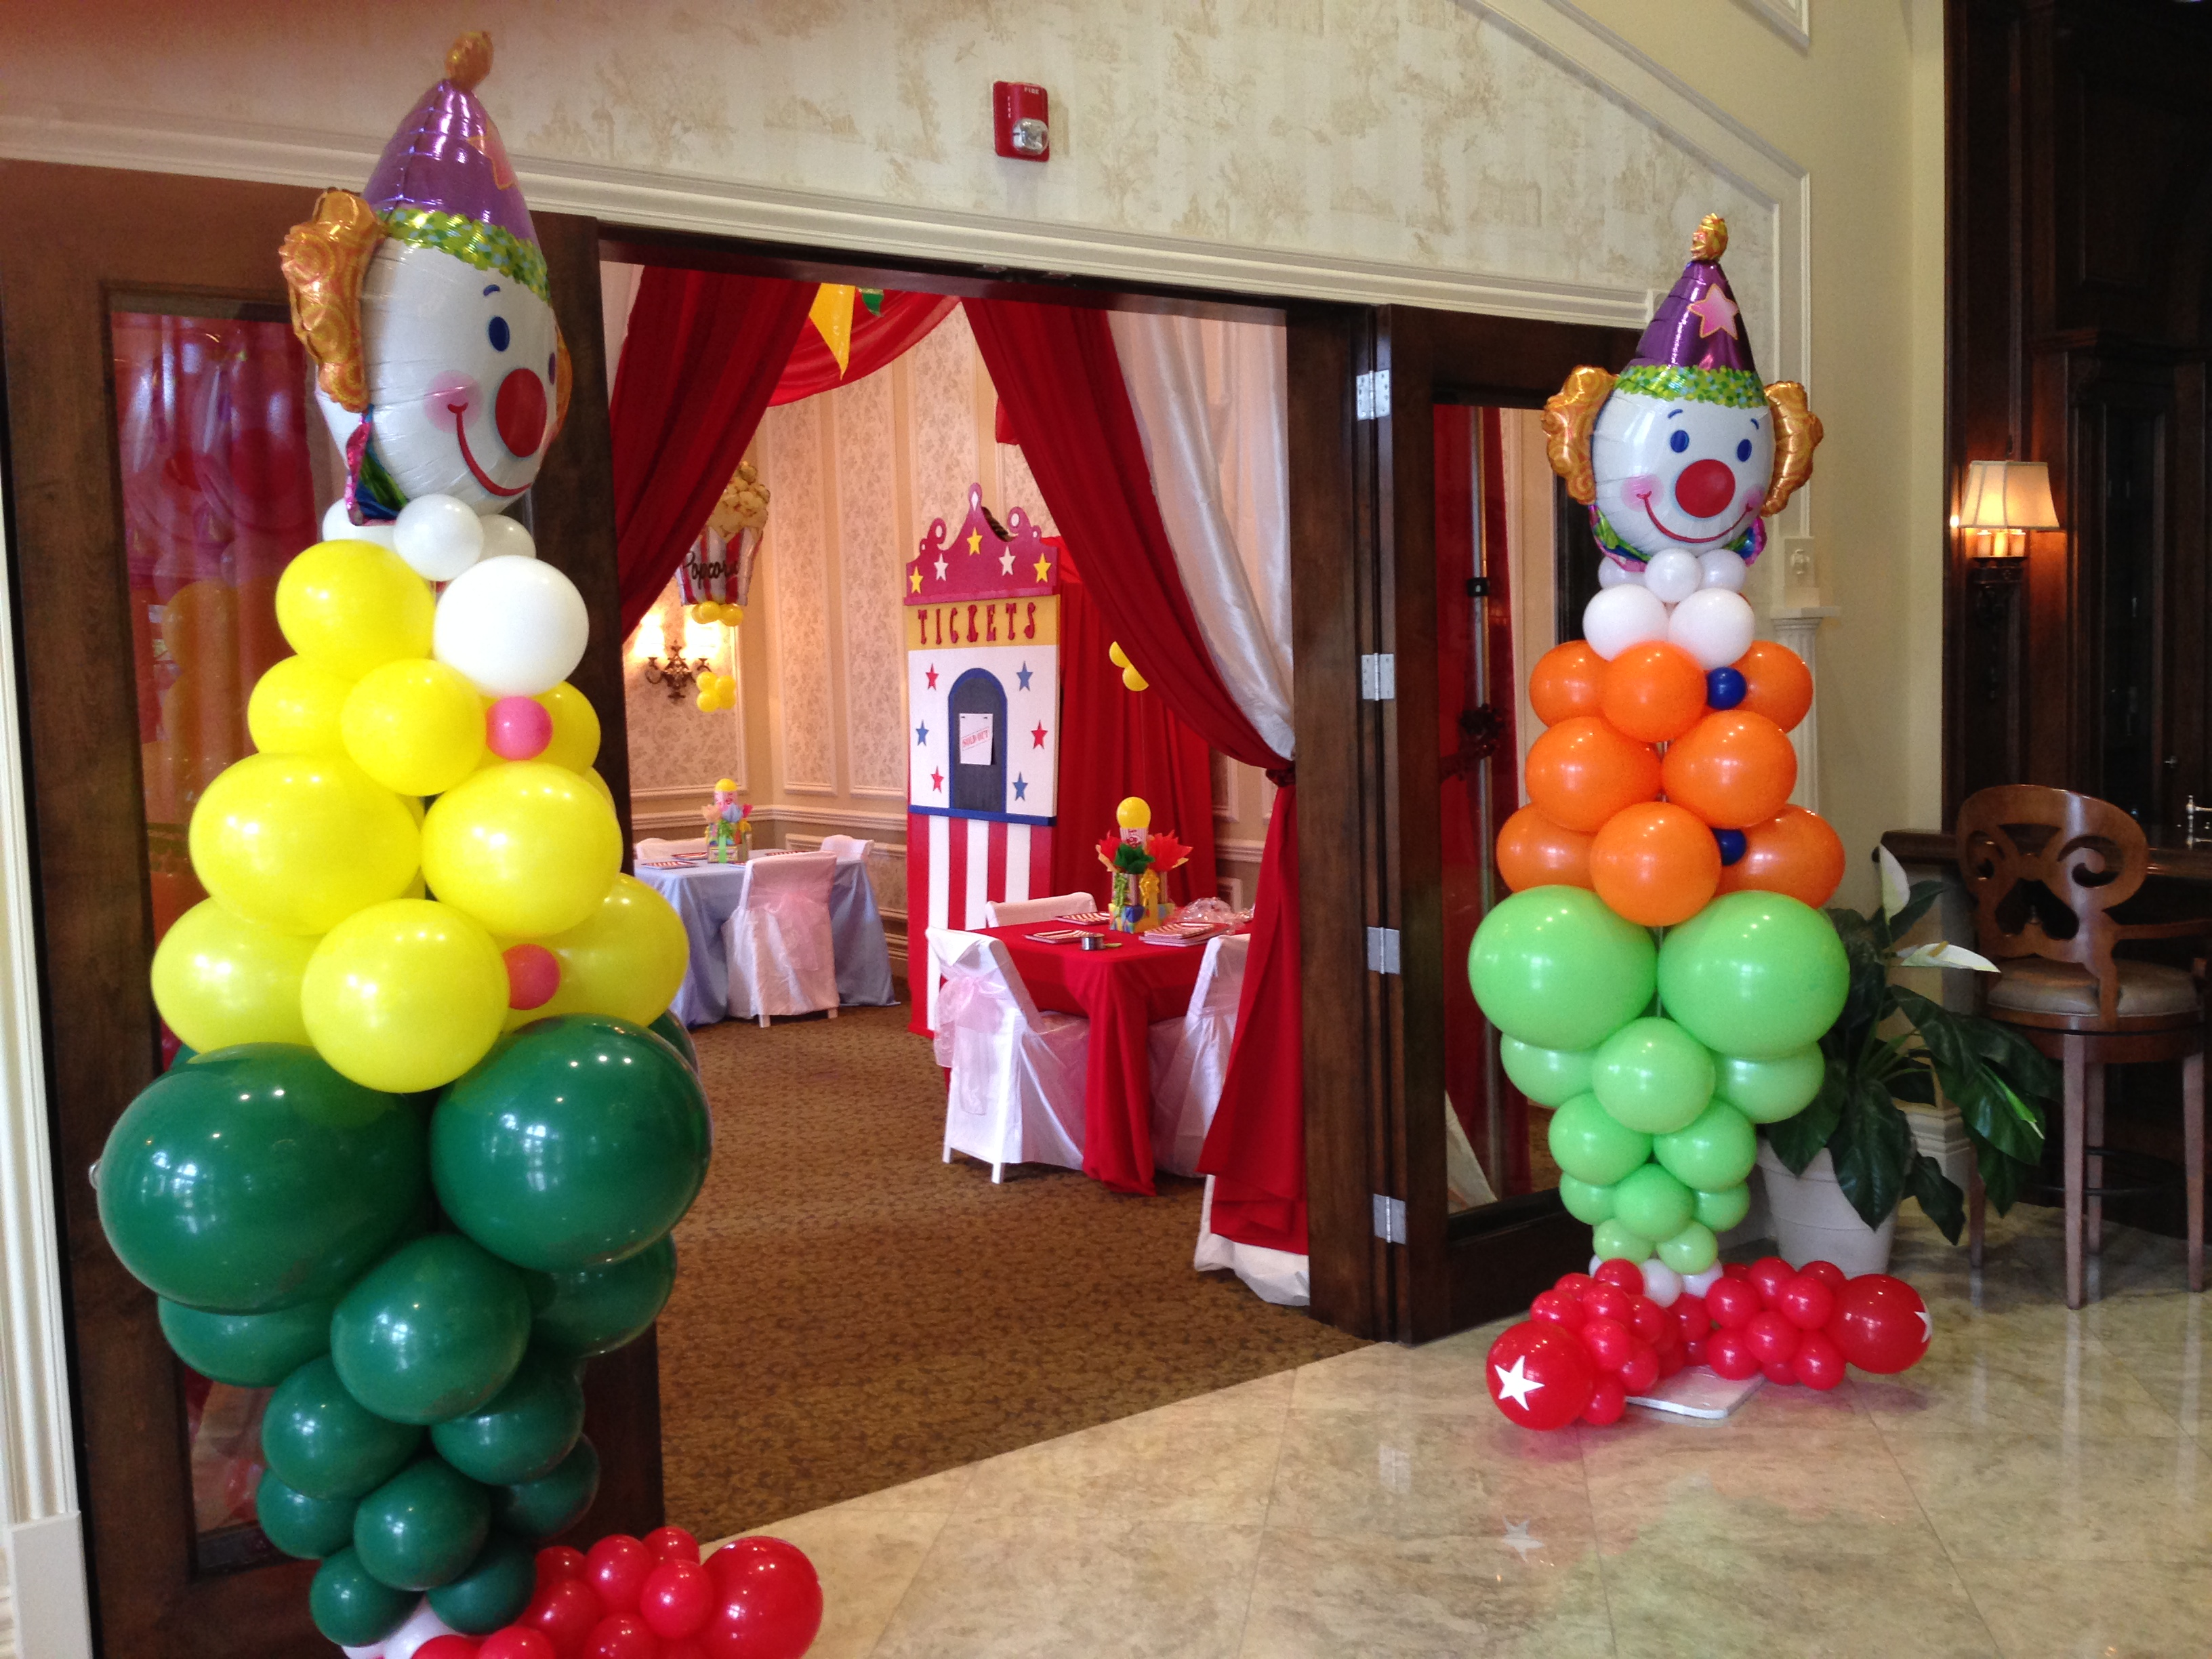 Clown Balloon Design